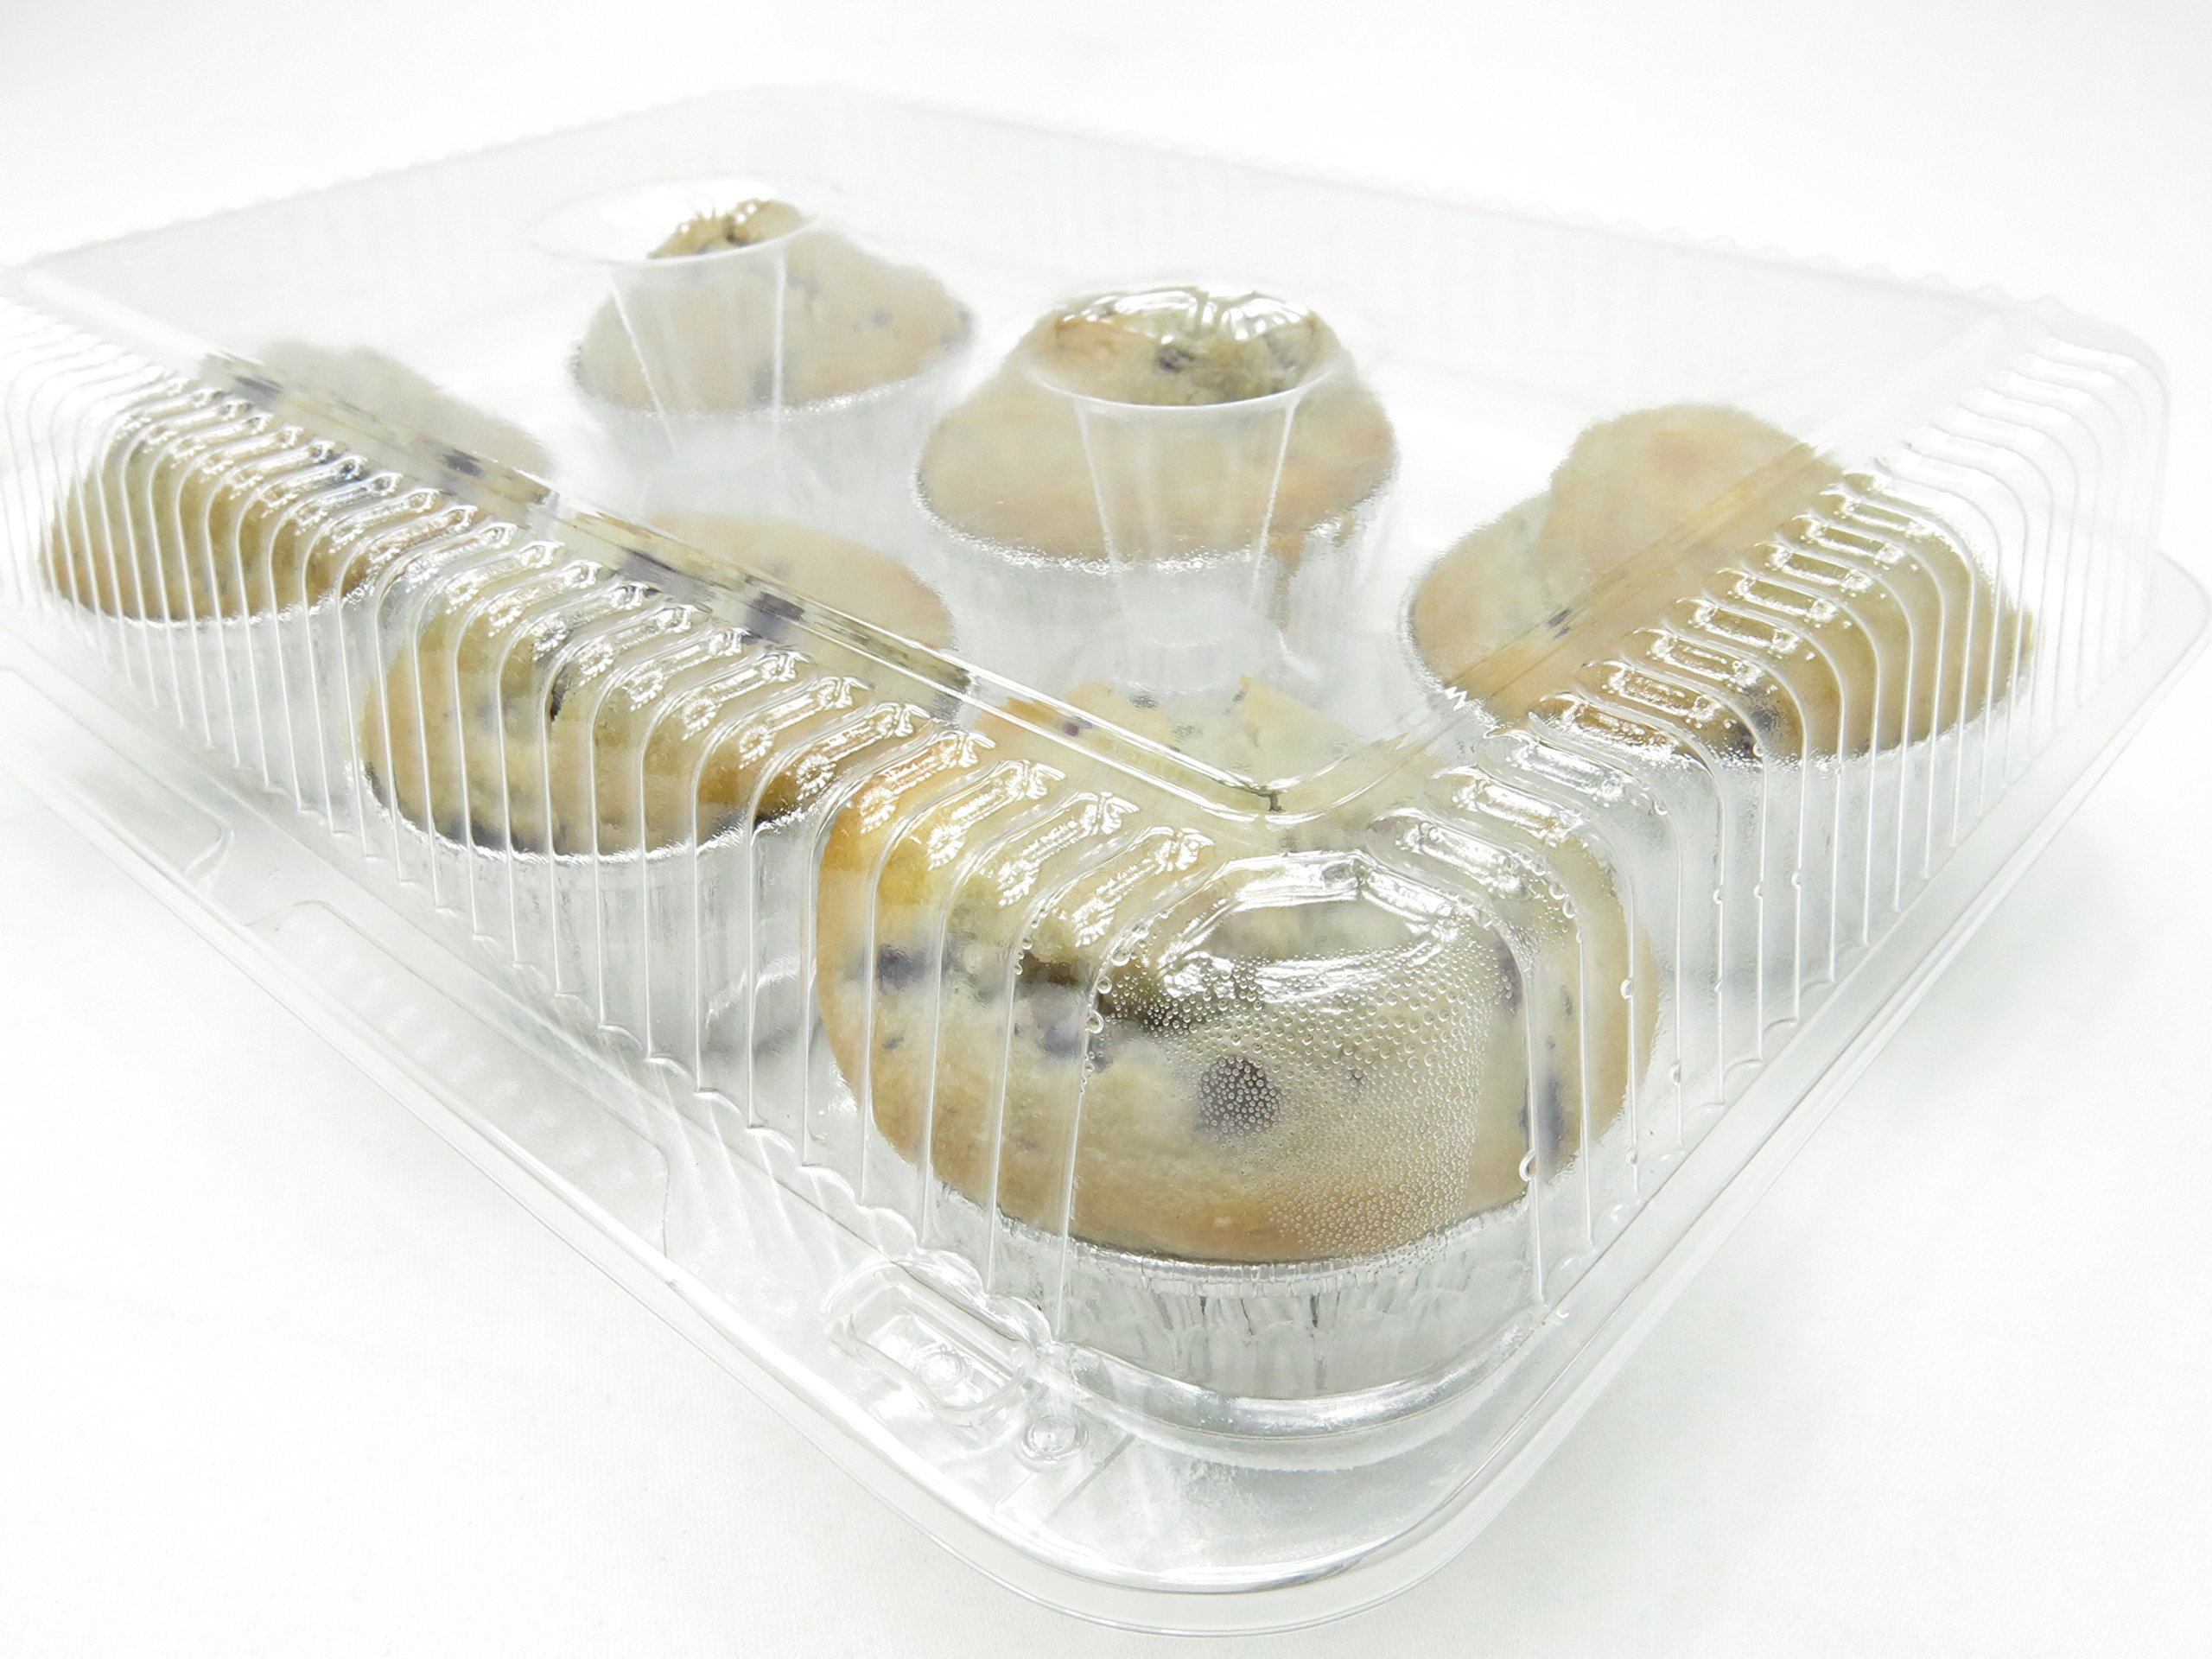 6 Cell Clear Locking Hinged Large Cupcake/Muffin and Bakery Containers #CPC-76 (150) by Inline Plastics (Image #3)